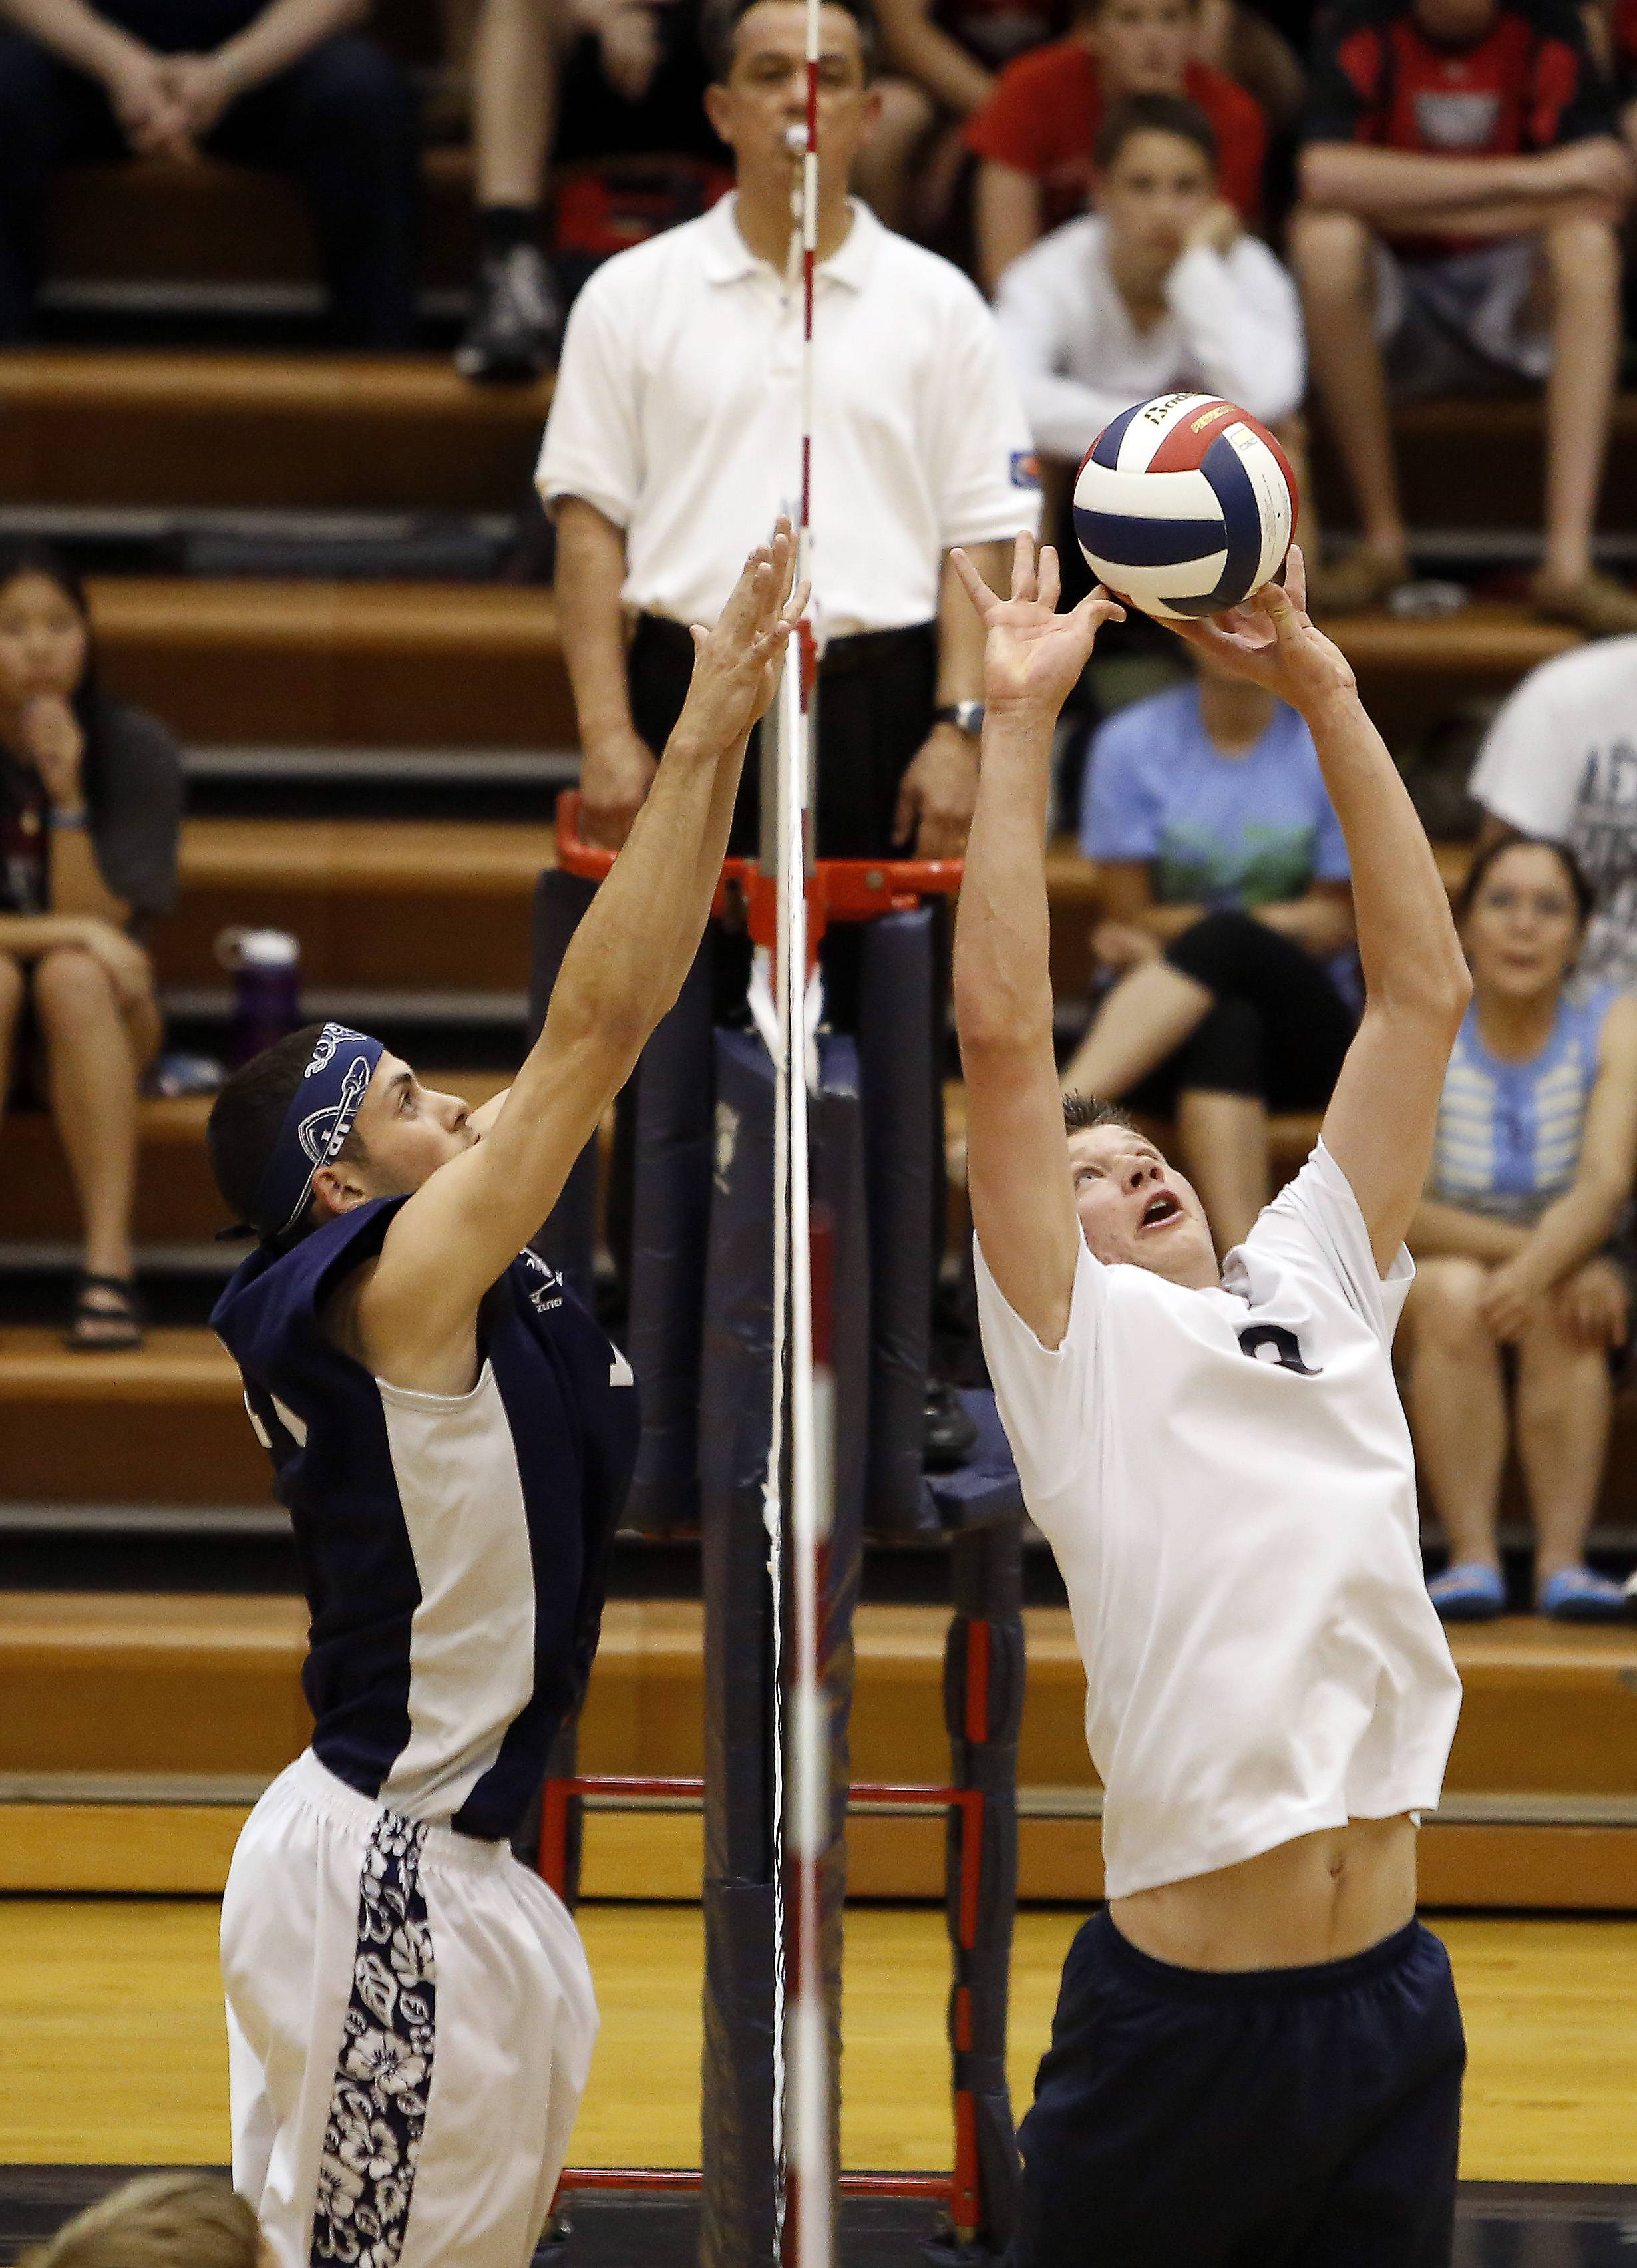 Lake Park's Dominick Terry 16 goes for the block against Addison Trail's Kevin Grygo 9 during boys volleyball at Conant sectional semifinals Friday in Hoffman Estates.